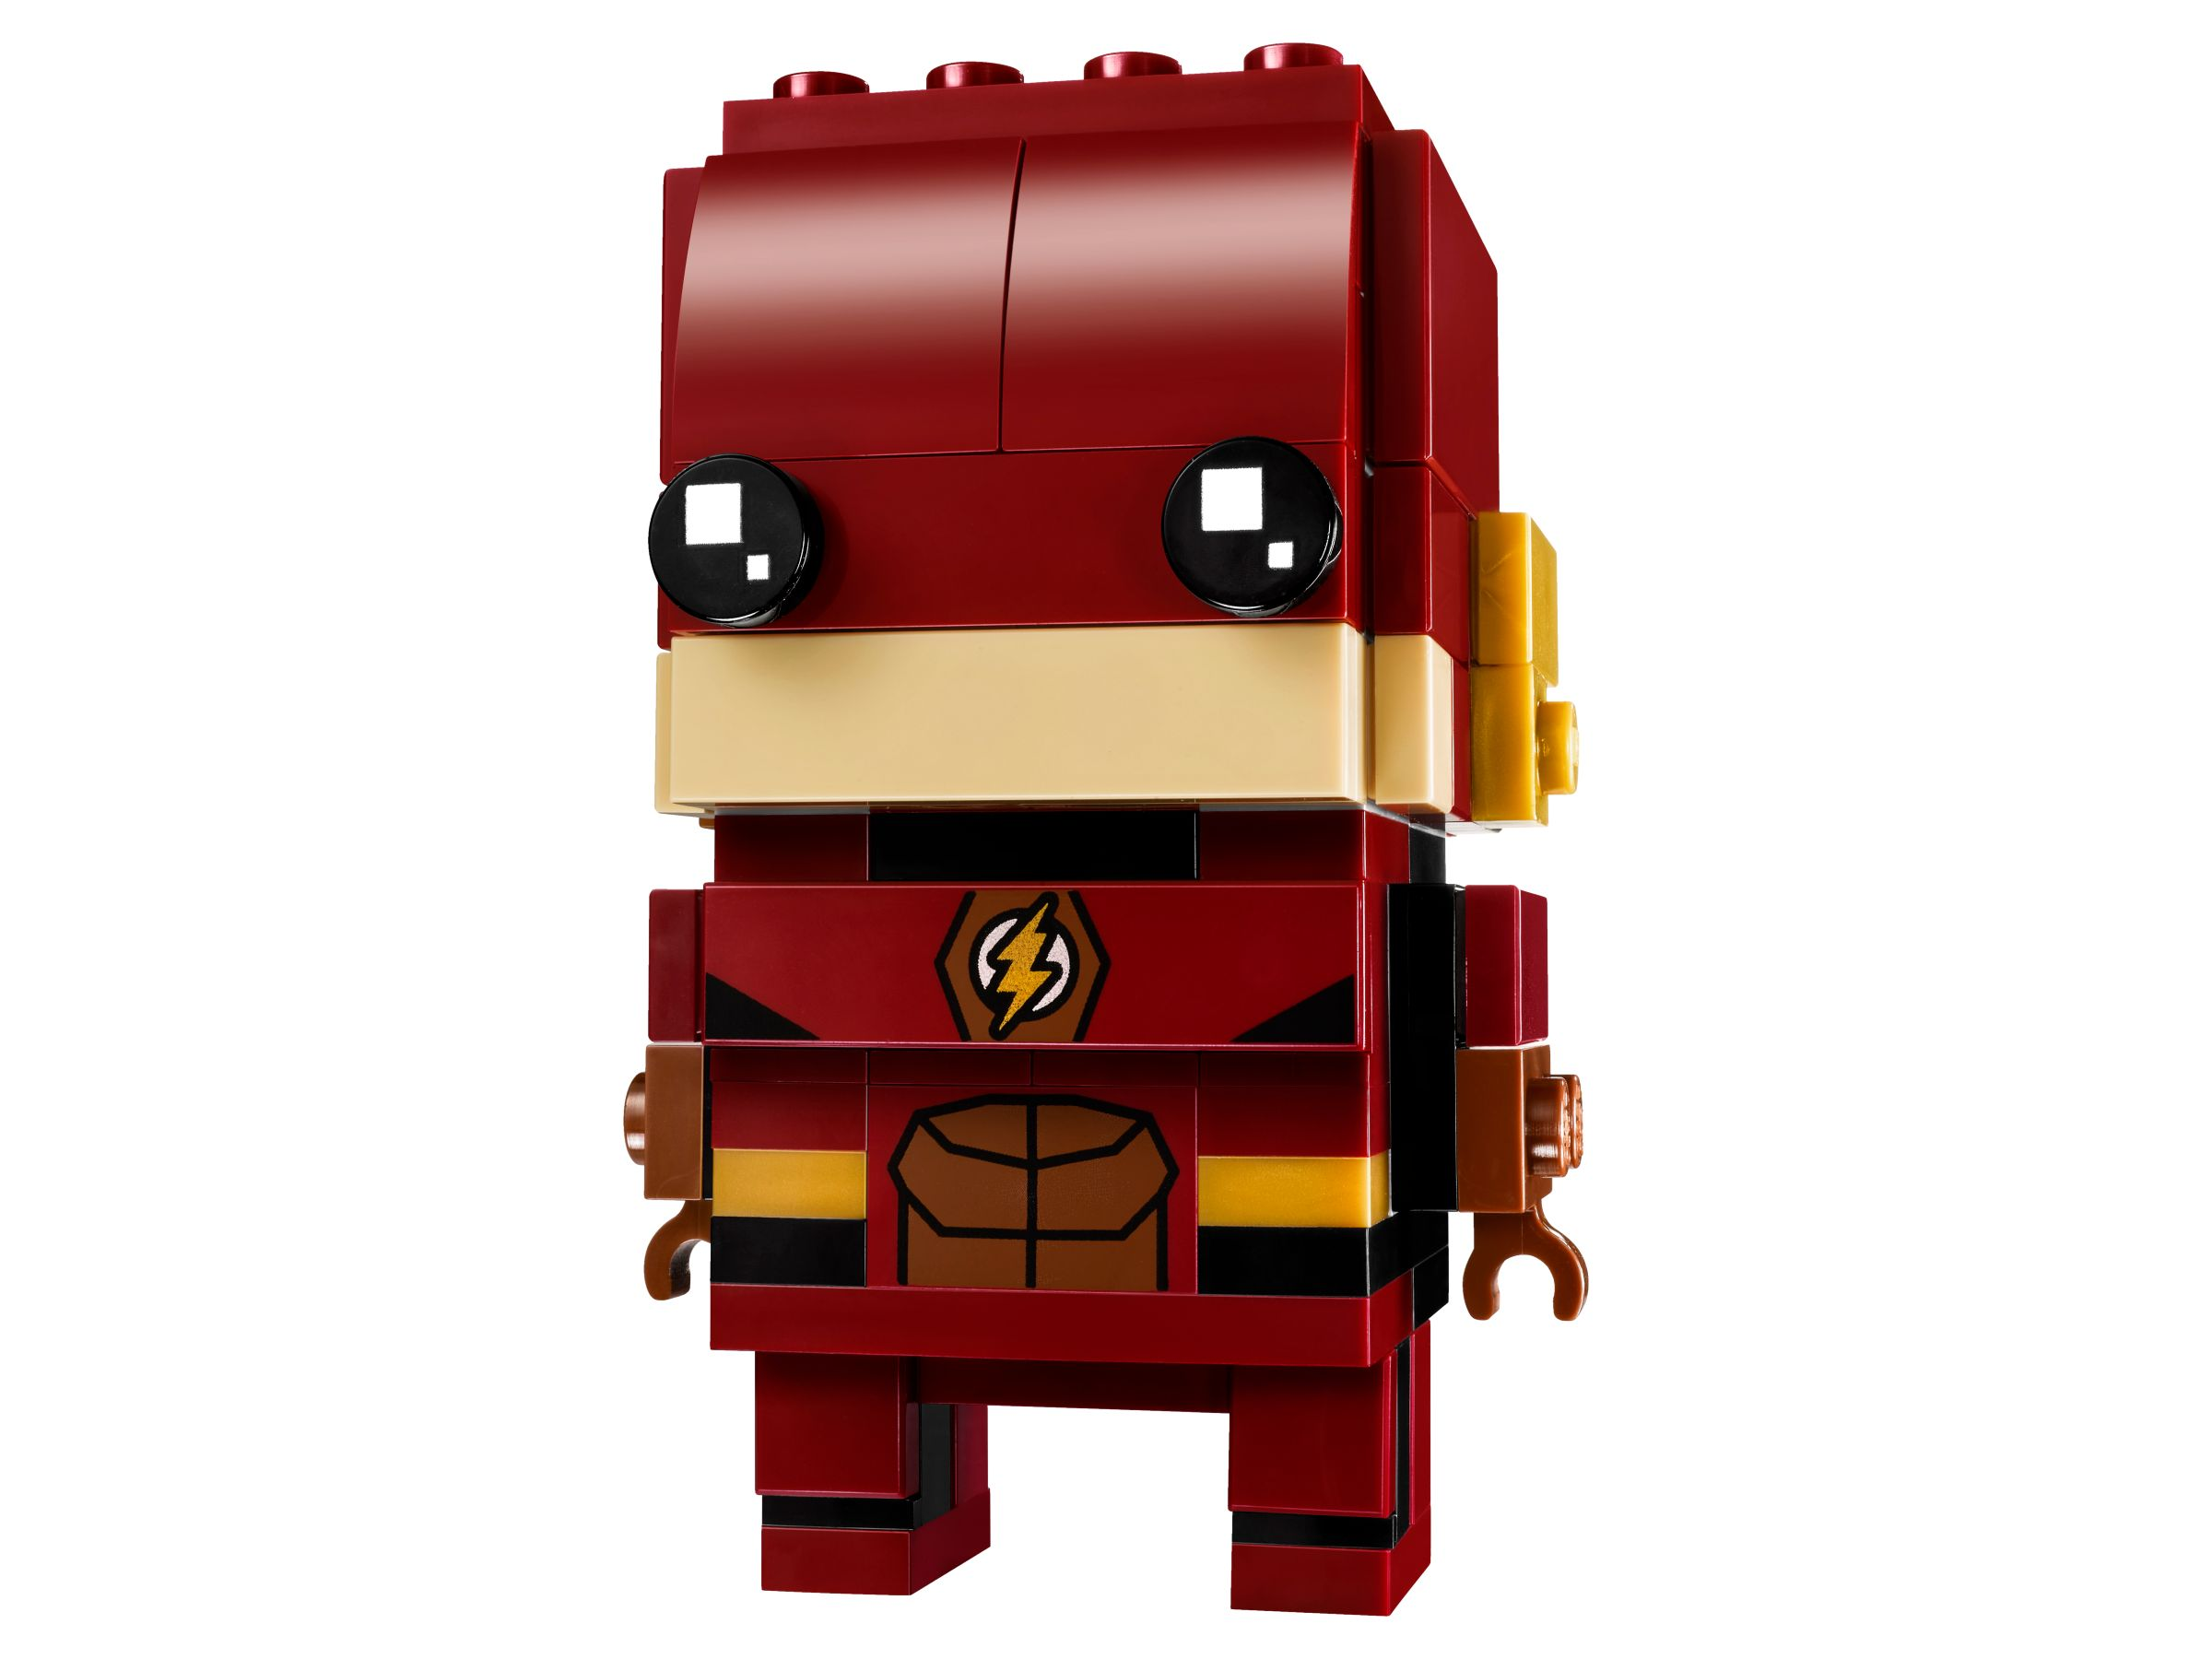 LEGO BrickHeadz 41598 The Flash LEGO_41598_alt3.jpg